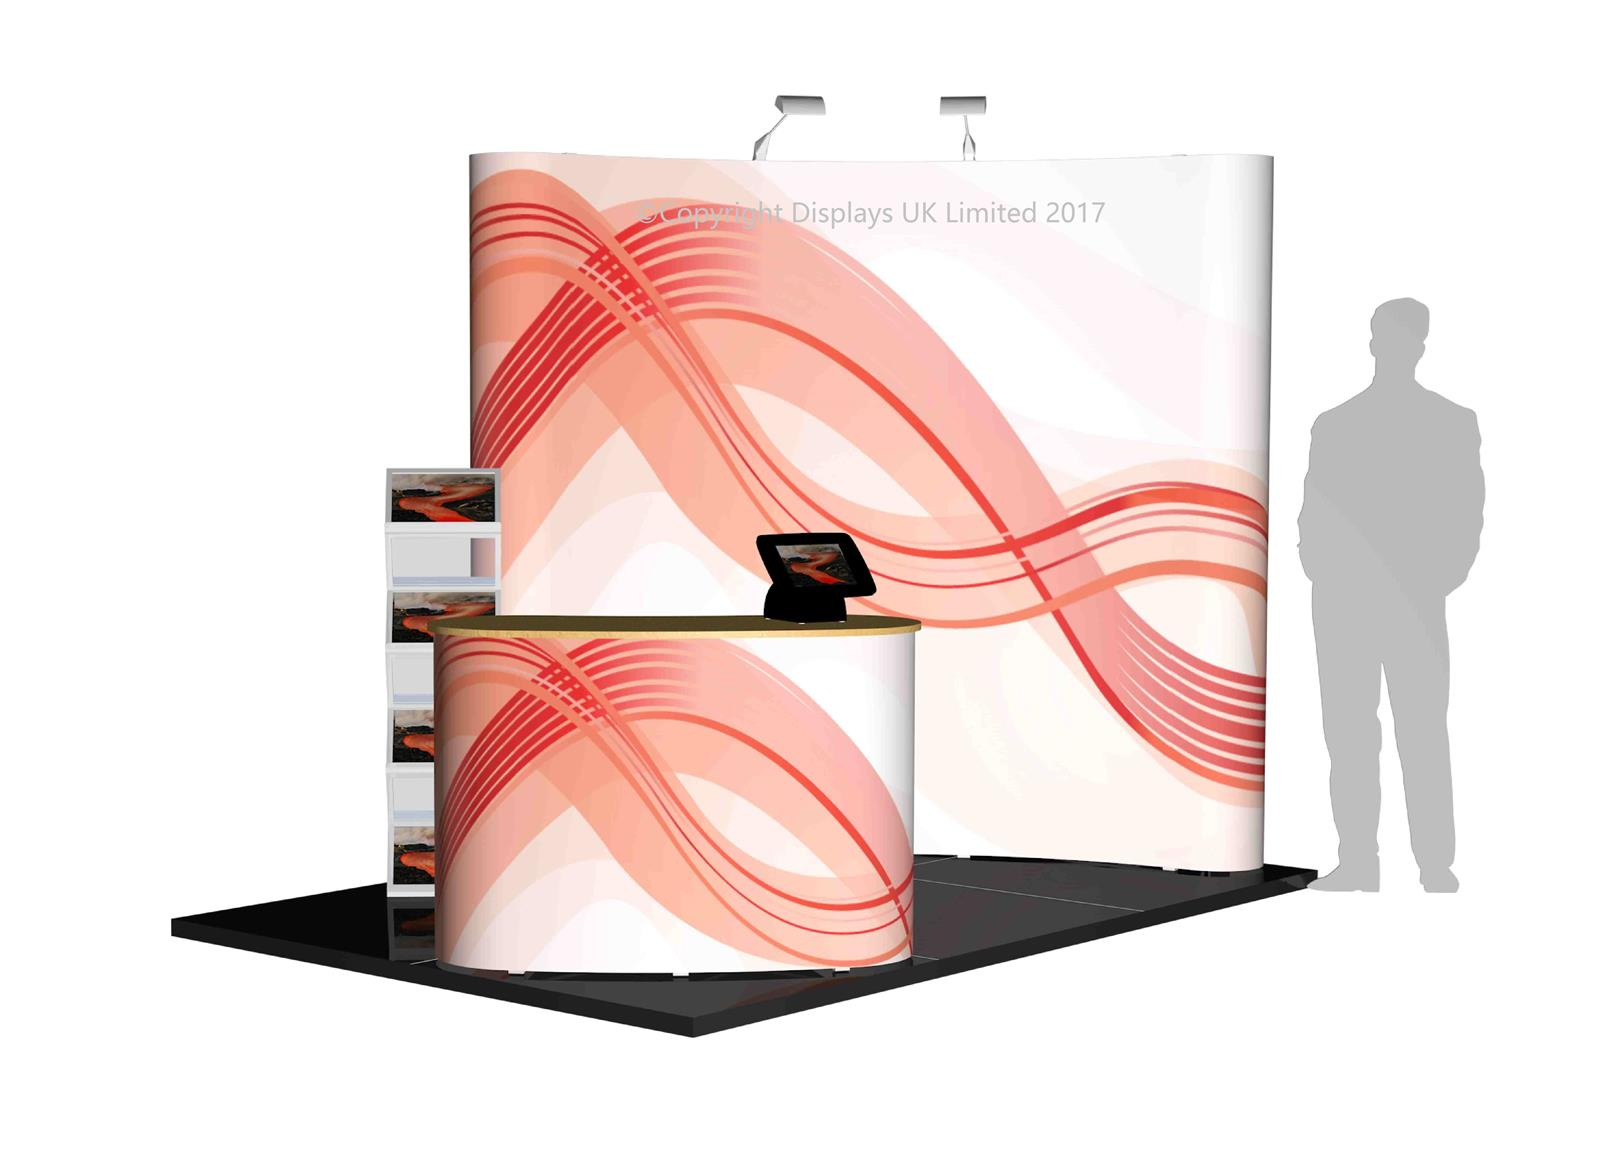 3m x 2m Linked Pop Up Exhibition Stand - Kit 6 - P3x2-2bC